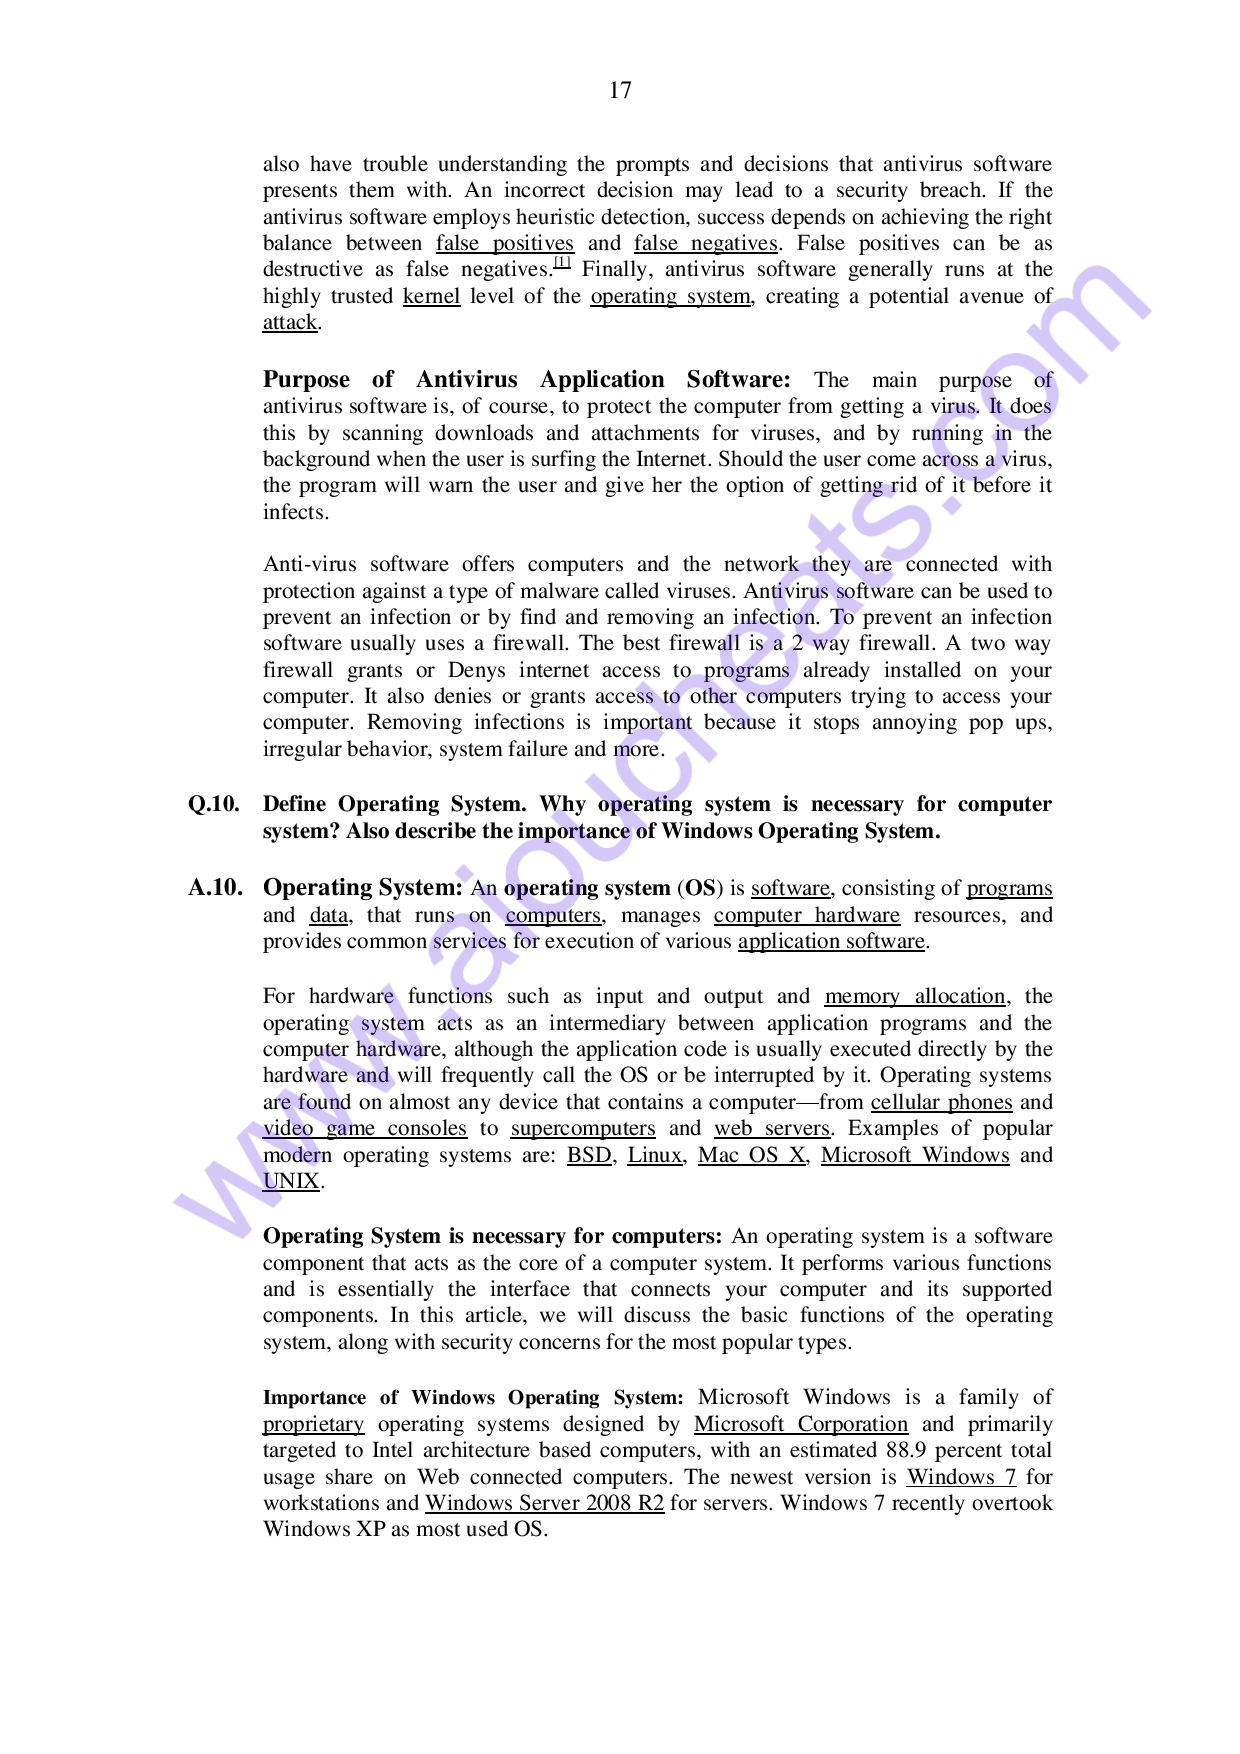 essay pin by phd statement of purpose examples usa on computer  essay about computer system mistyhamel computer science essay topics high  school essay thesis statements also essay